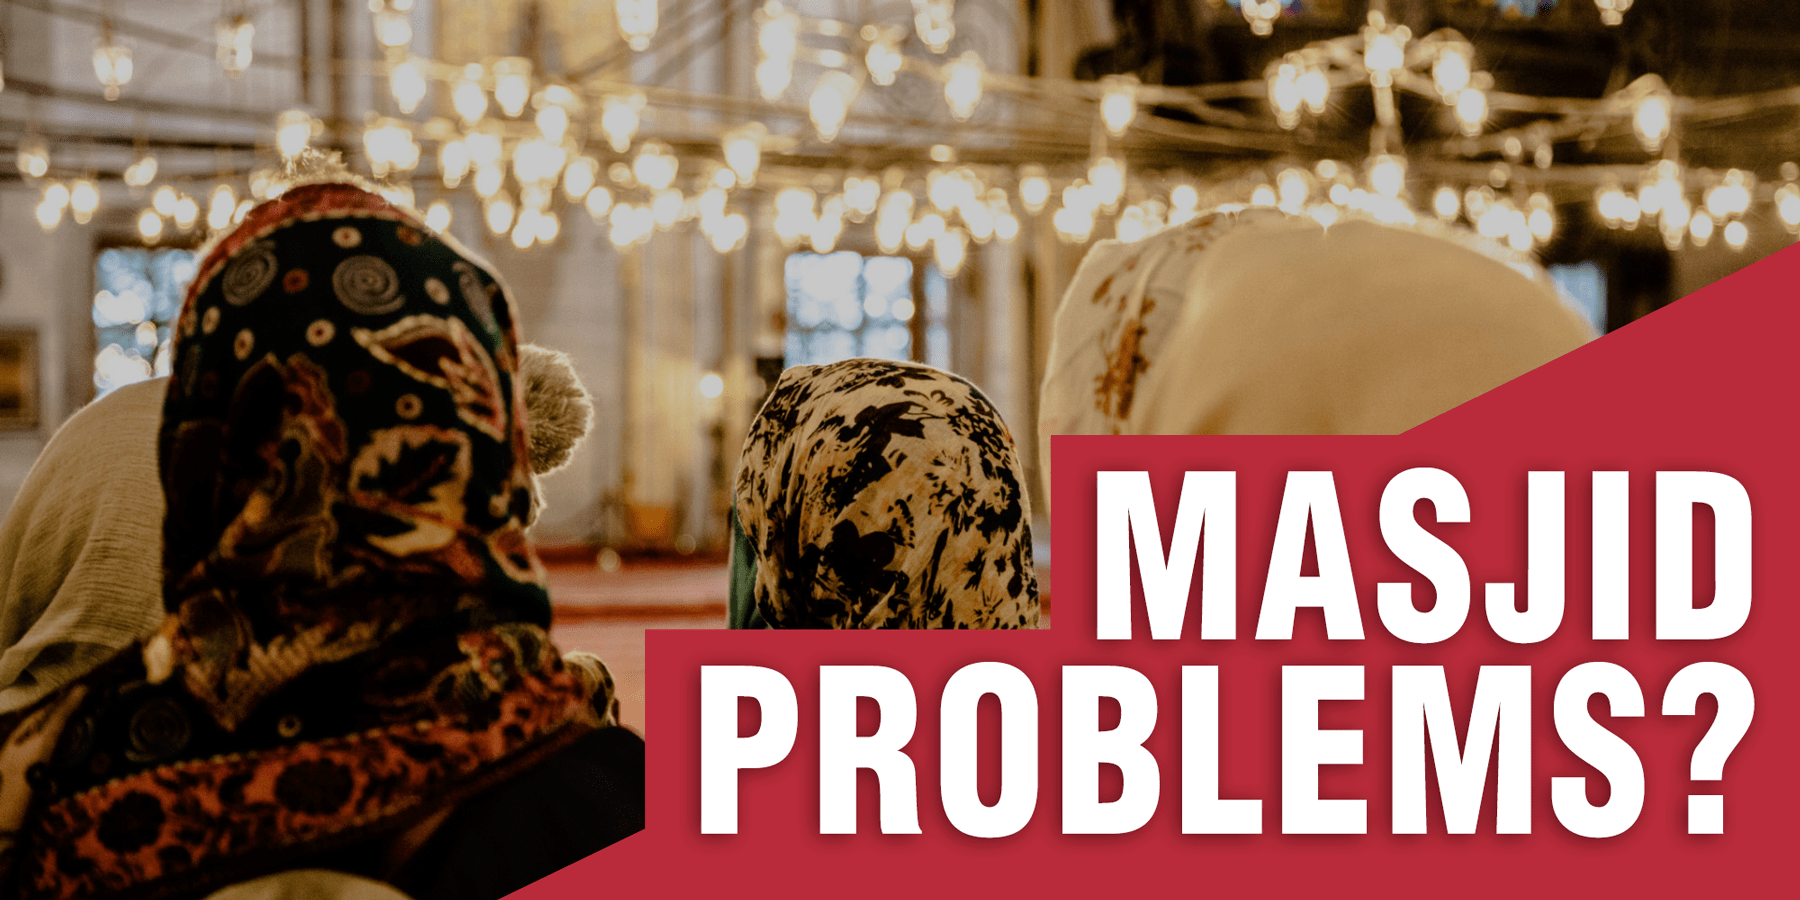 7 Problems of Masjids in the West